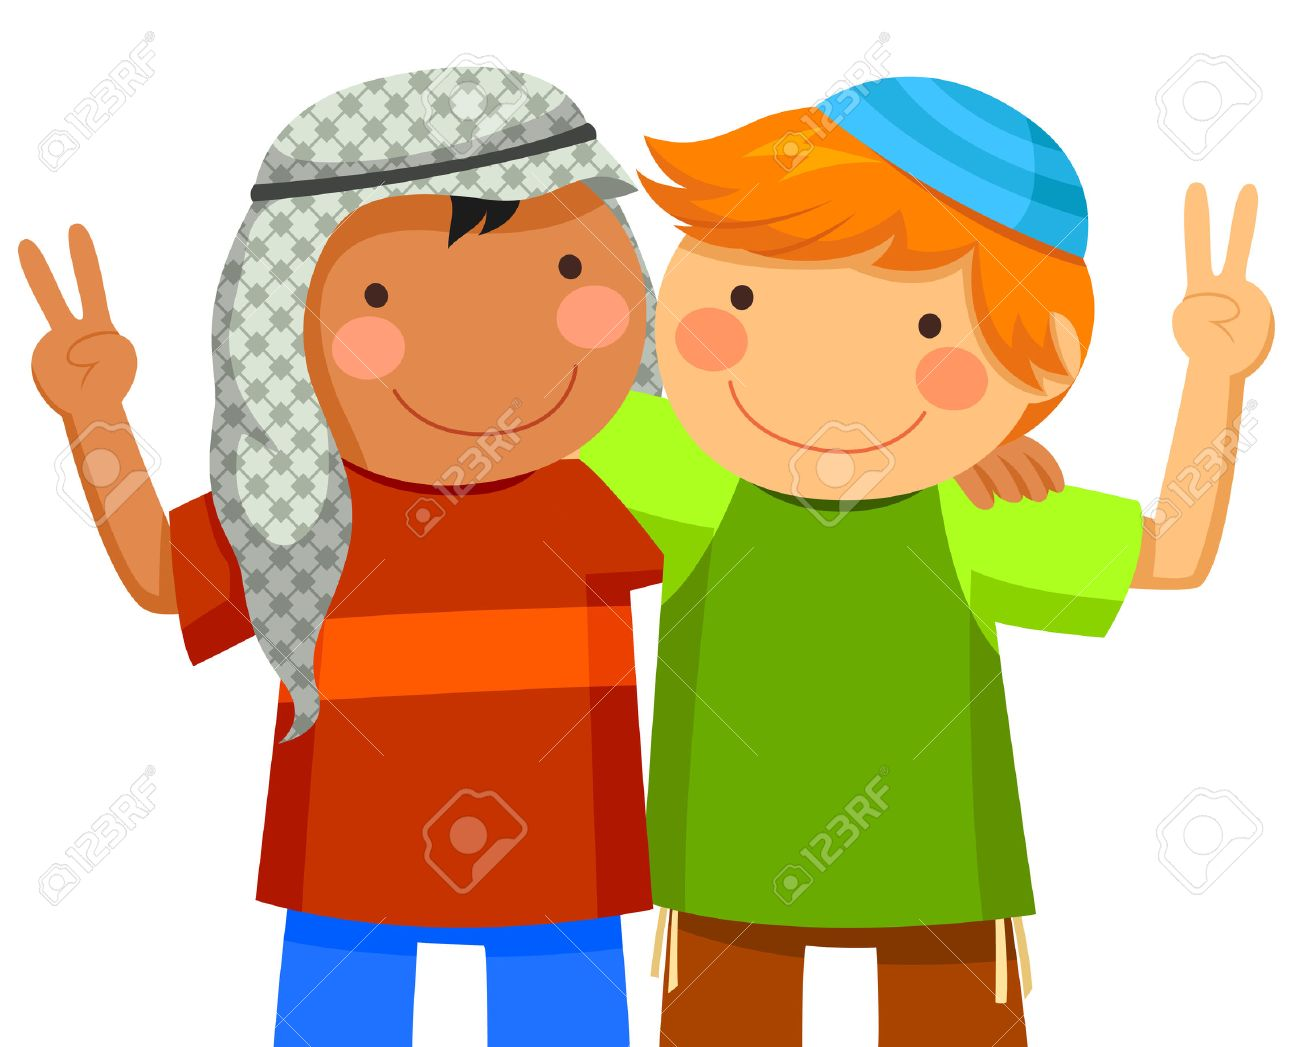 Muslim Boy And Jewish Boy Being Friends Royalty Free Cliparts Vectors And Stock Illustration Image 30561351